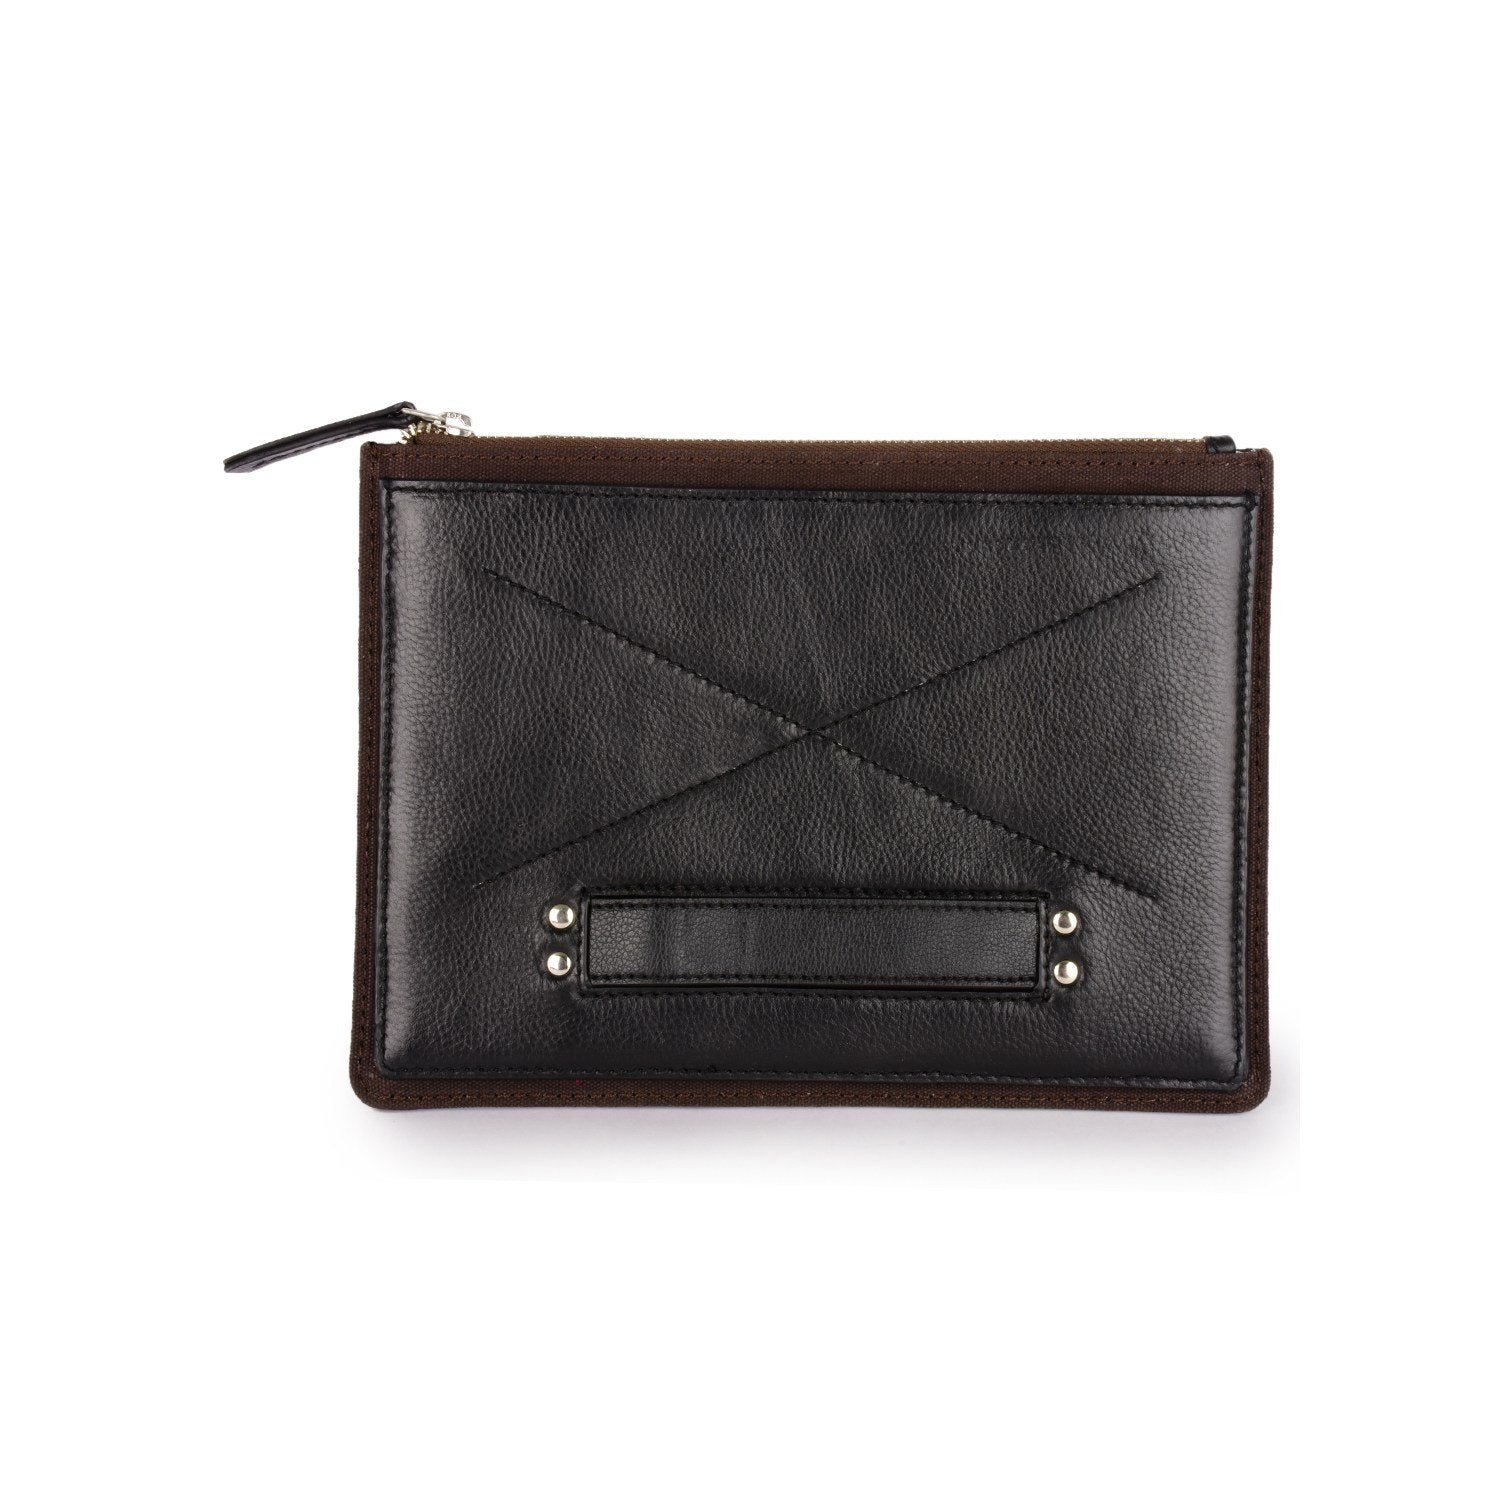 Leather Ipad Sleeve - PRM1317